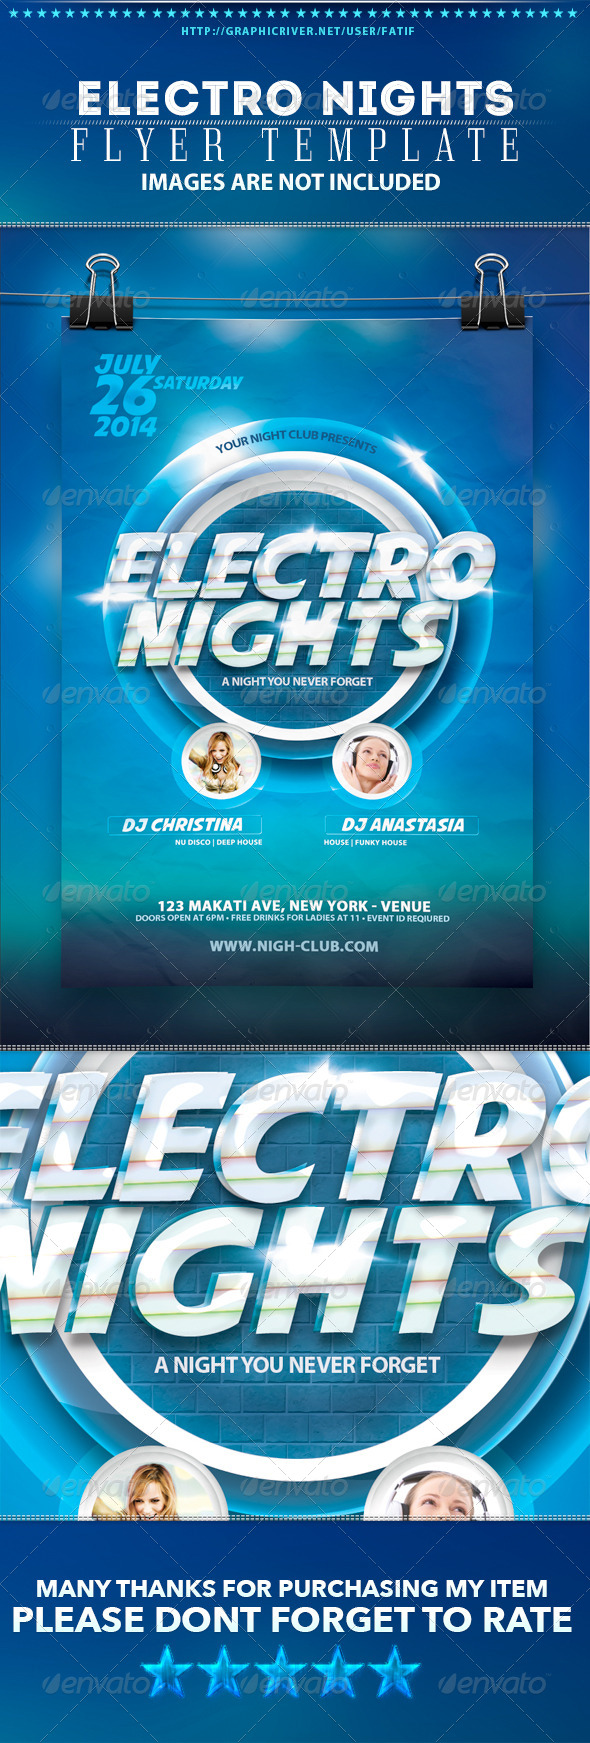 Electro Nights Flyer Template - Clubs & Parties Events